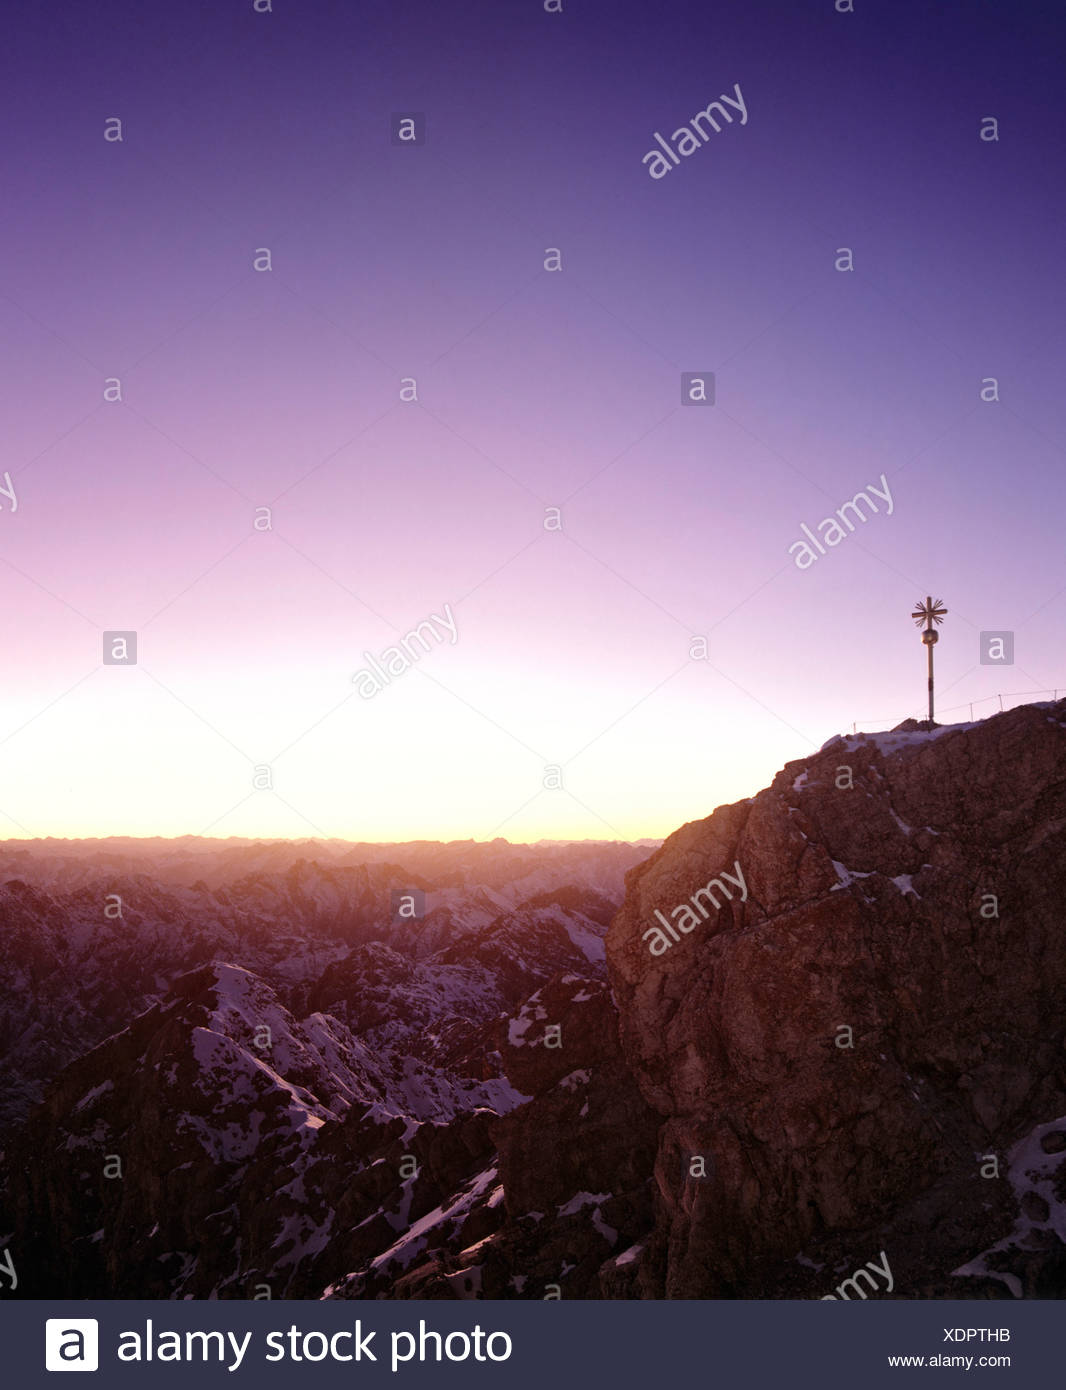 Summit cross at 2962 m or 9718 ft on the Zugspitze, Germany's highest mountain, at dawn, Wetterstein Range, Werdenfels Region,  - Stock Image